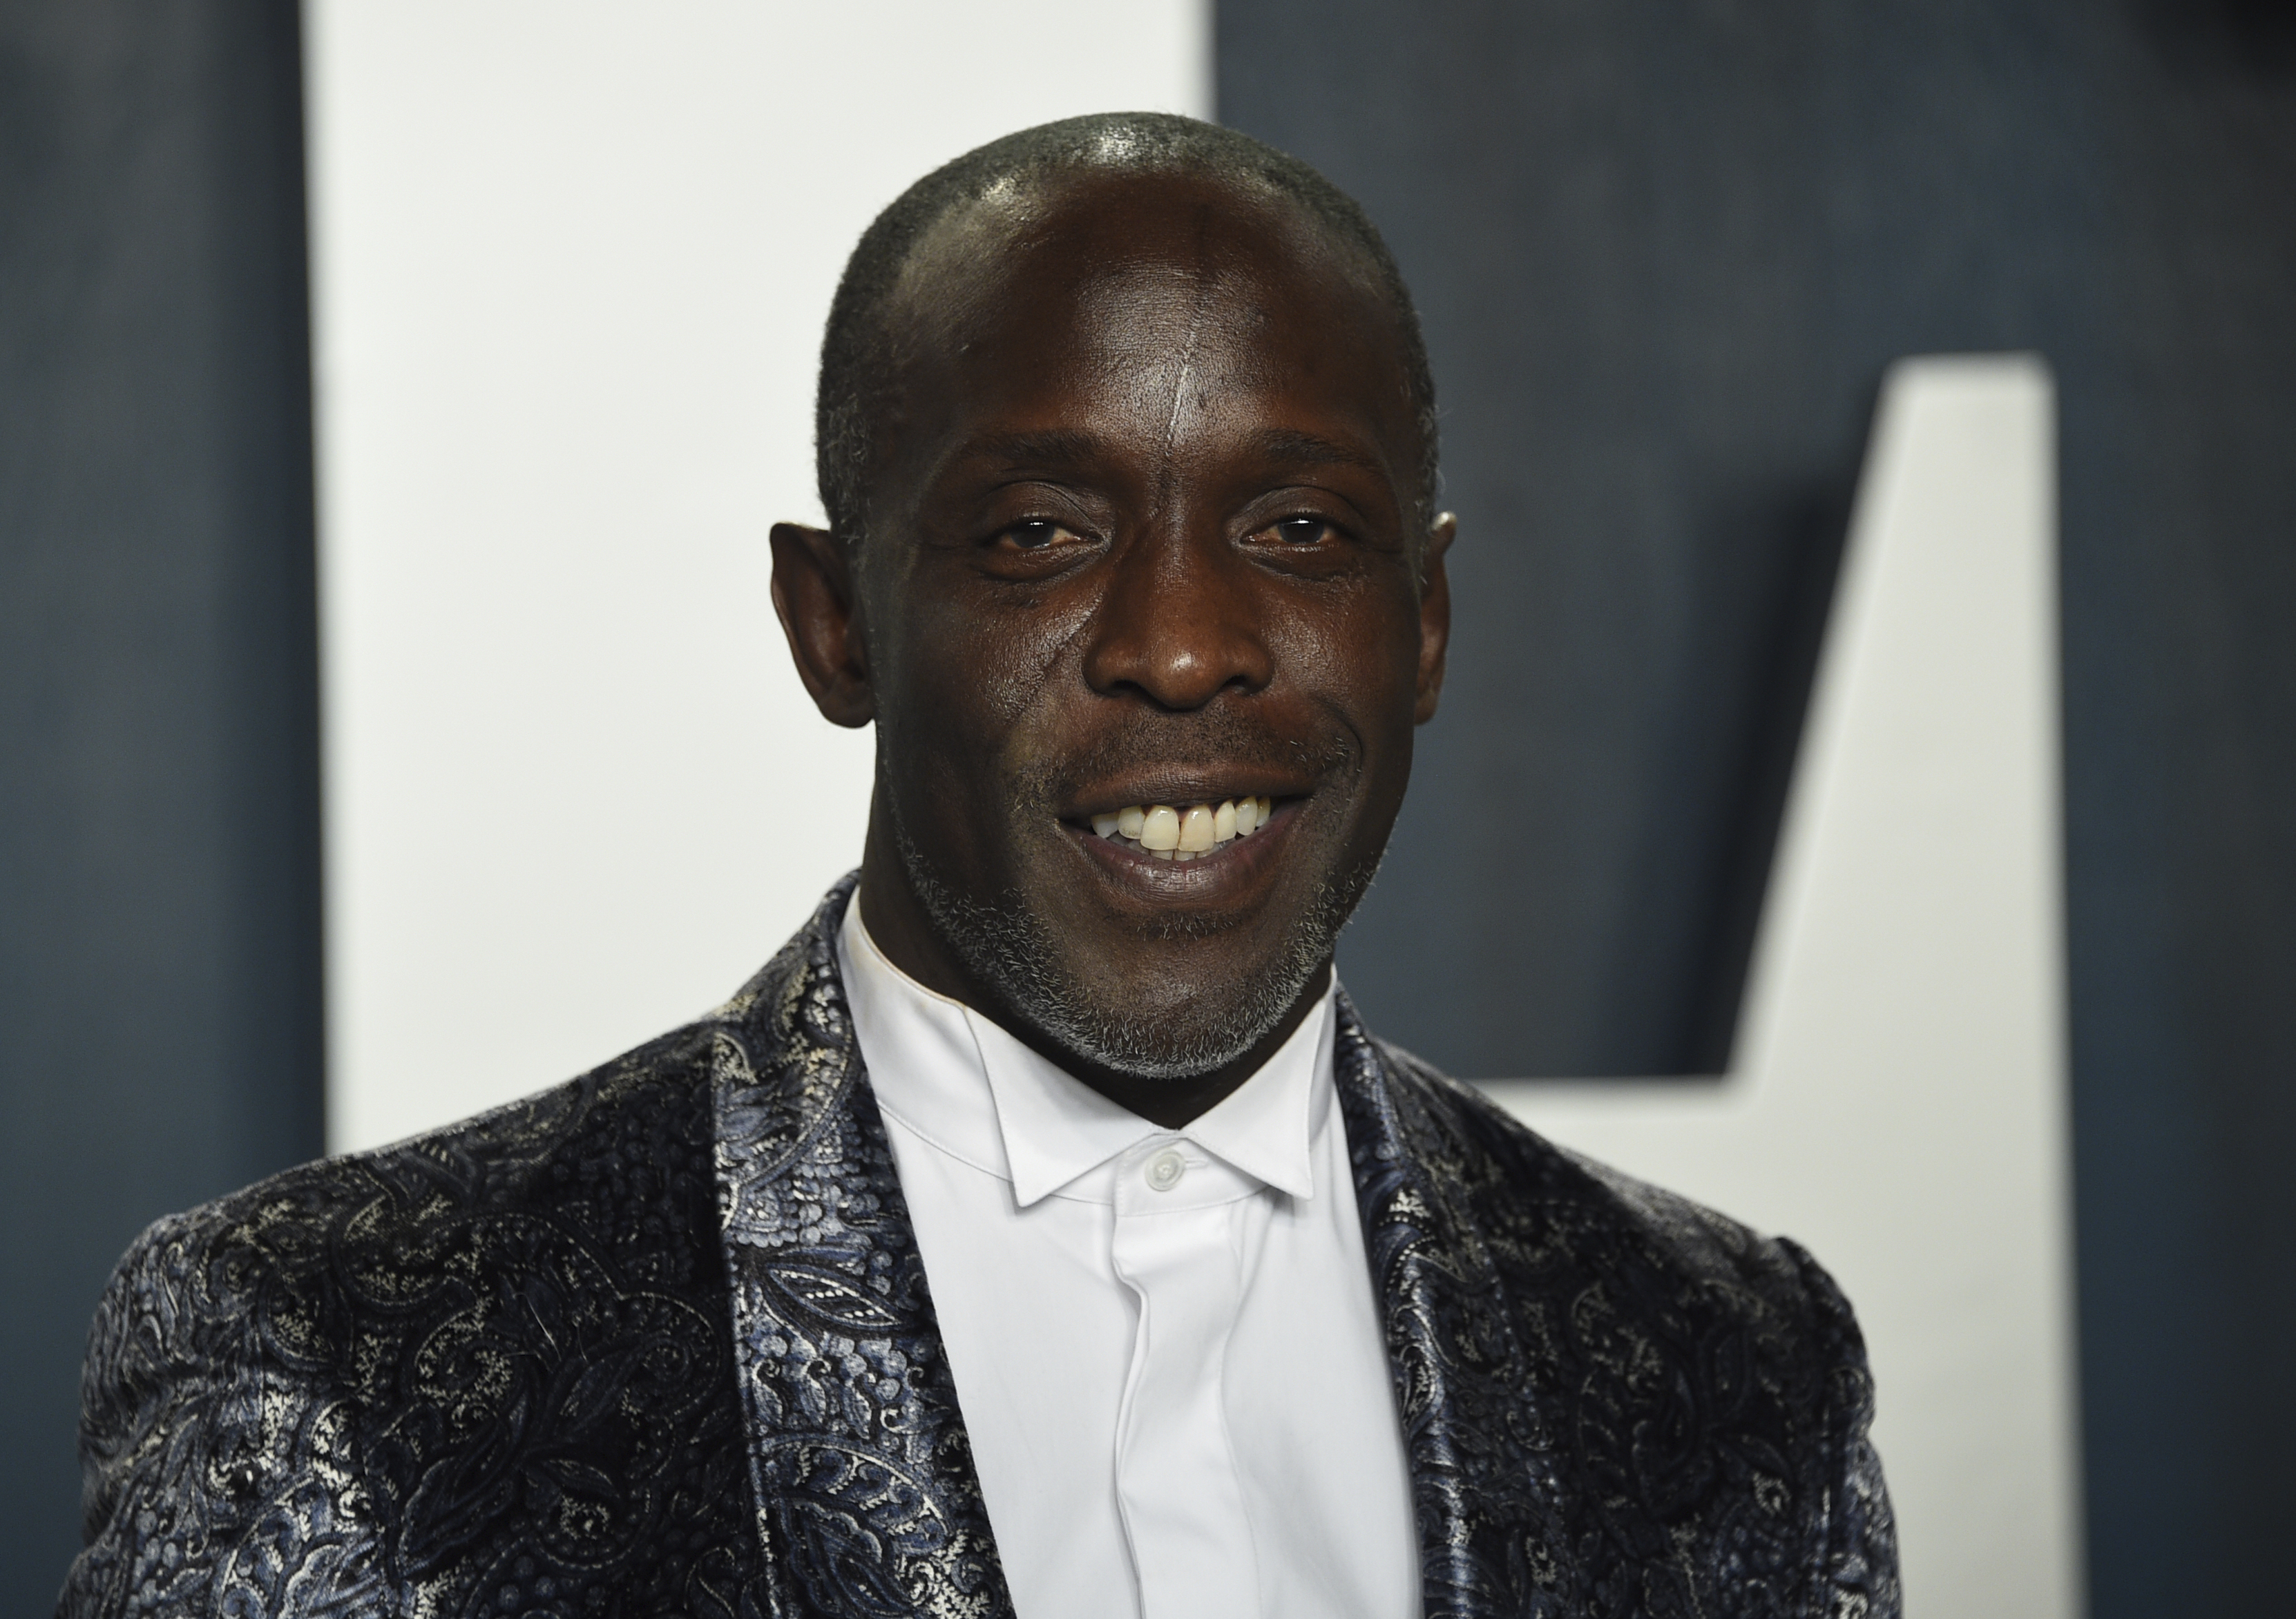 """In this Sunday, Feb. 9, 2020, file photo, Michael K. Williams arrives at the Vanity Fair Oscar Party in Beverly Hills, Calif. Williams, who played the beloved character Omar Little on """"The Wire,"""" has died. New York City police say Williams was found dead Monday, Sept. 6, 2021, at his apartment in Brooklyn. He was 54."""